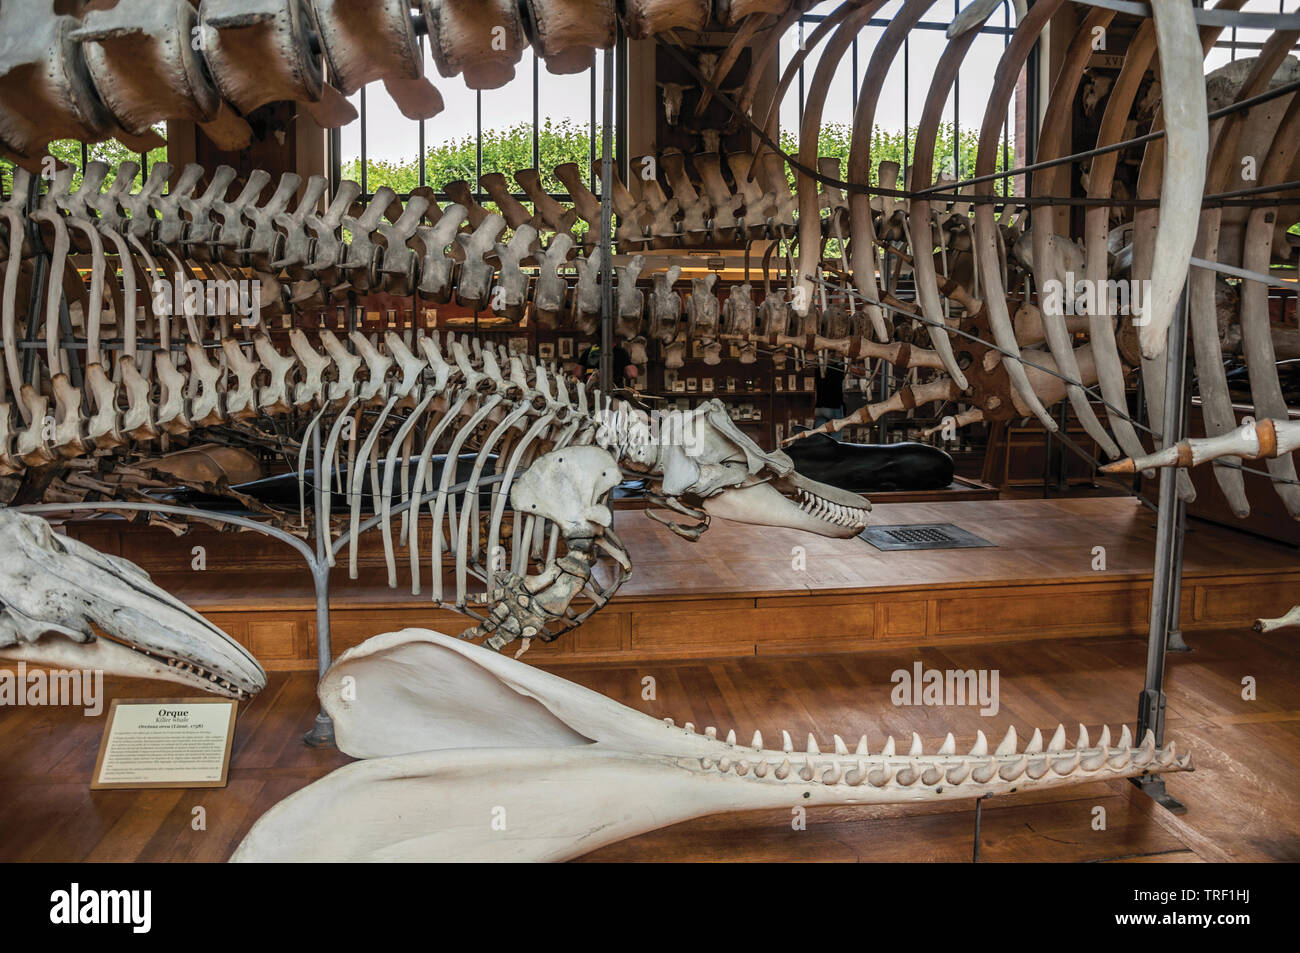 Skeletons of marine mammals in Gallery of Paleontology and Comparative Anatomy at Paris, France. - Stock Image